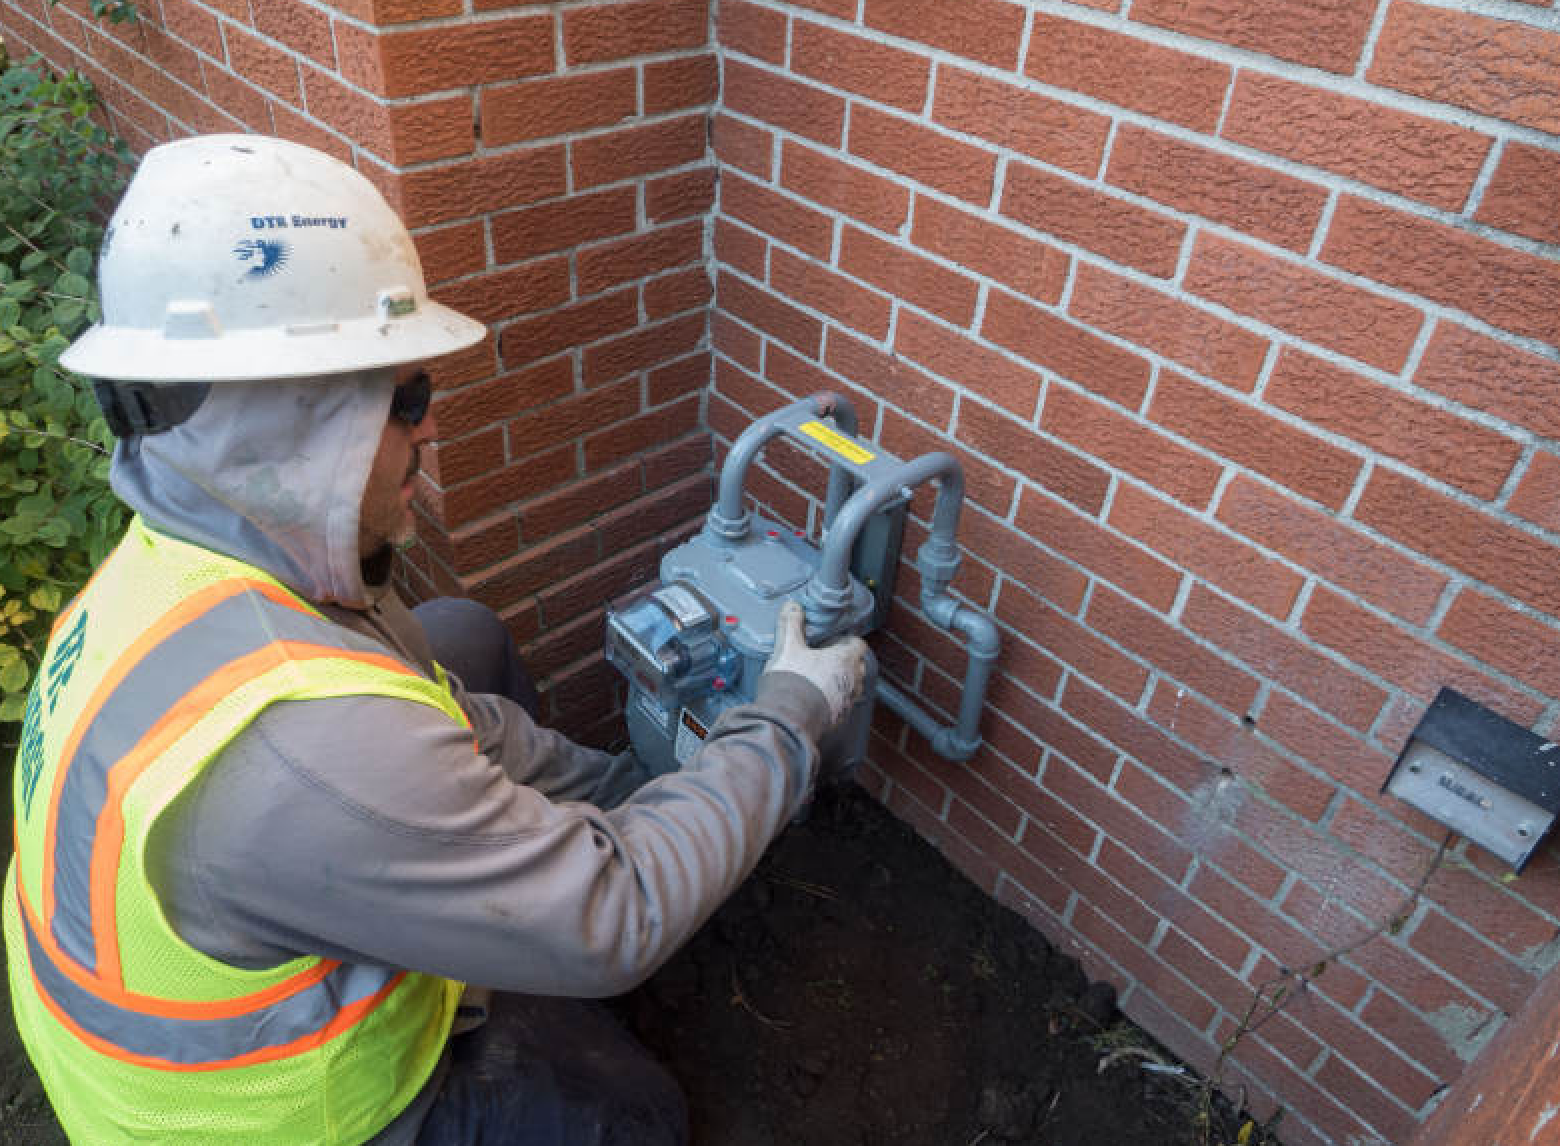 One of thousands of meter upgrades being installed outside homes.